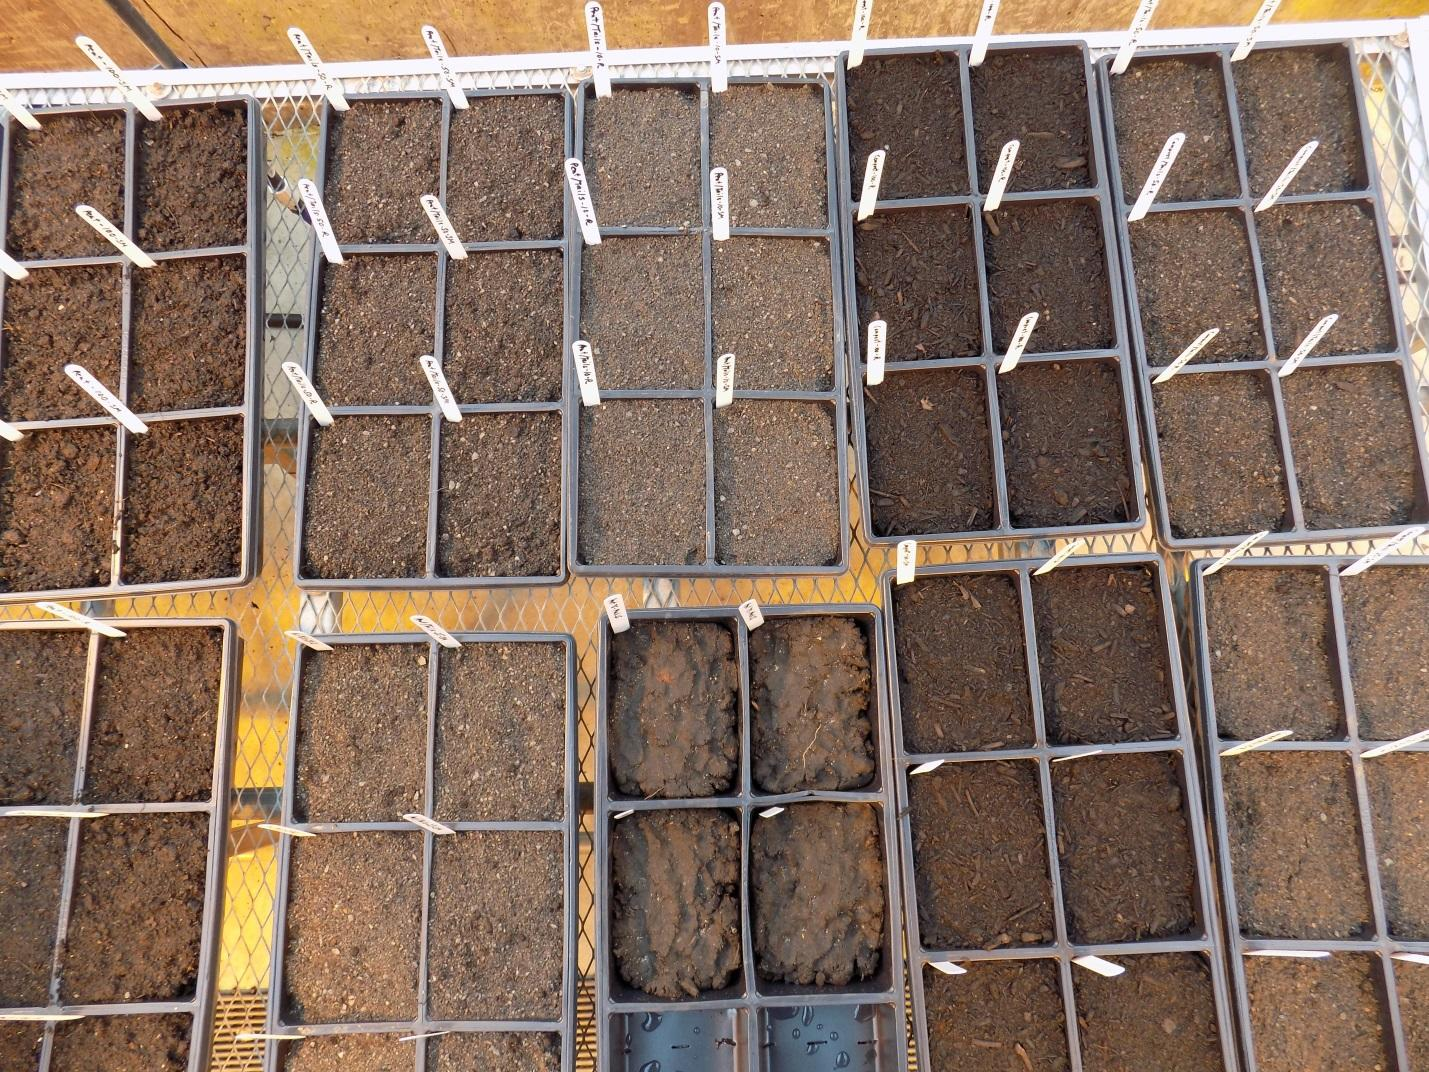 Open containers of different soils lined up in rows on a table top.